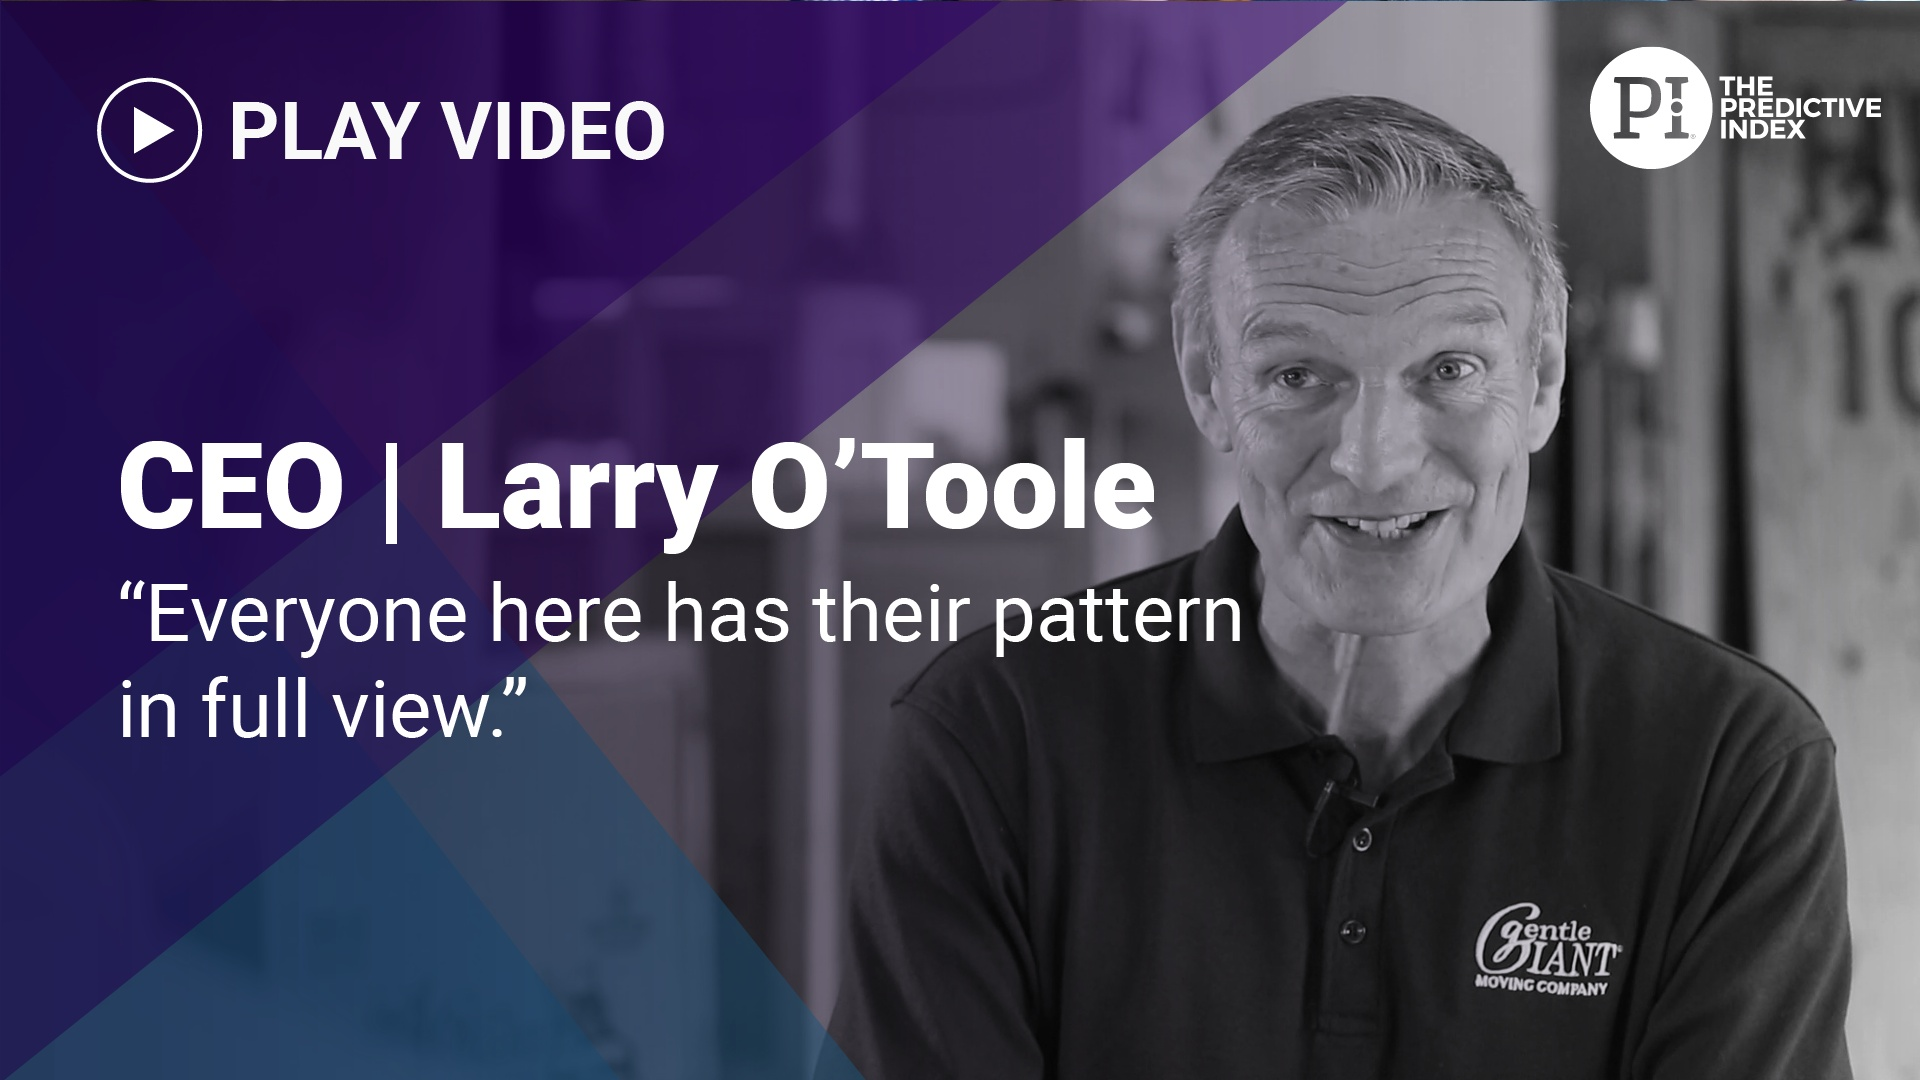 Larry O'Toole on self awareness from PI